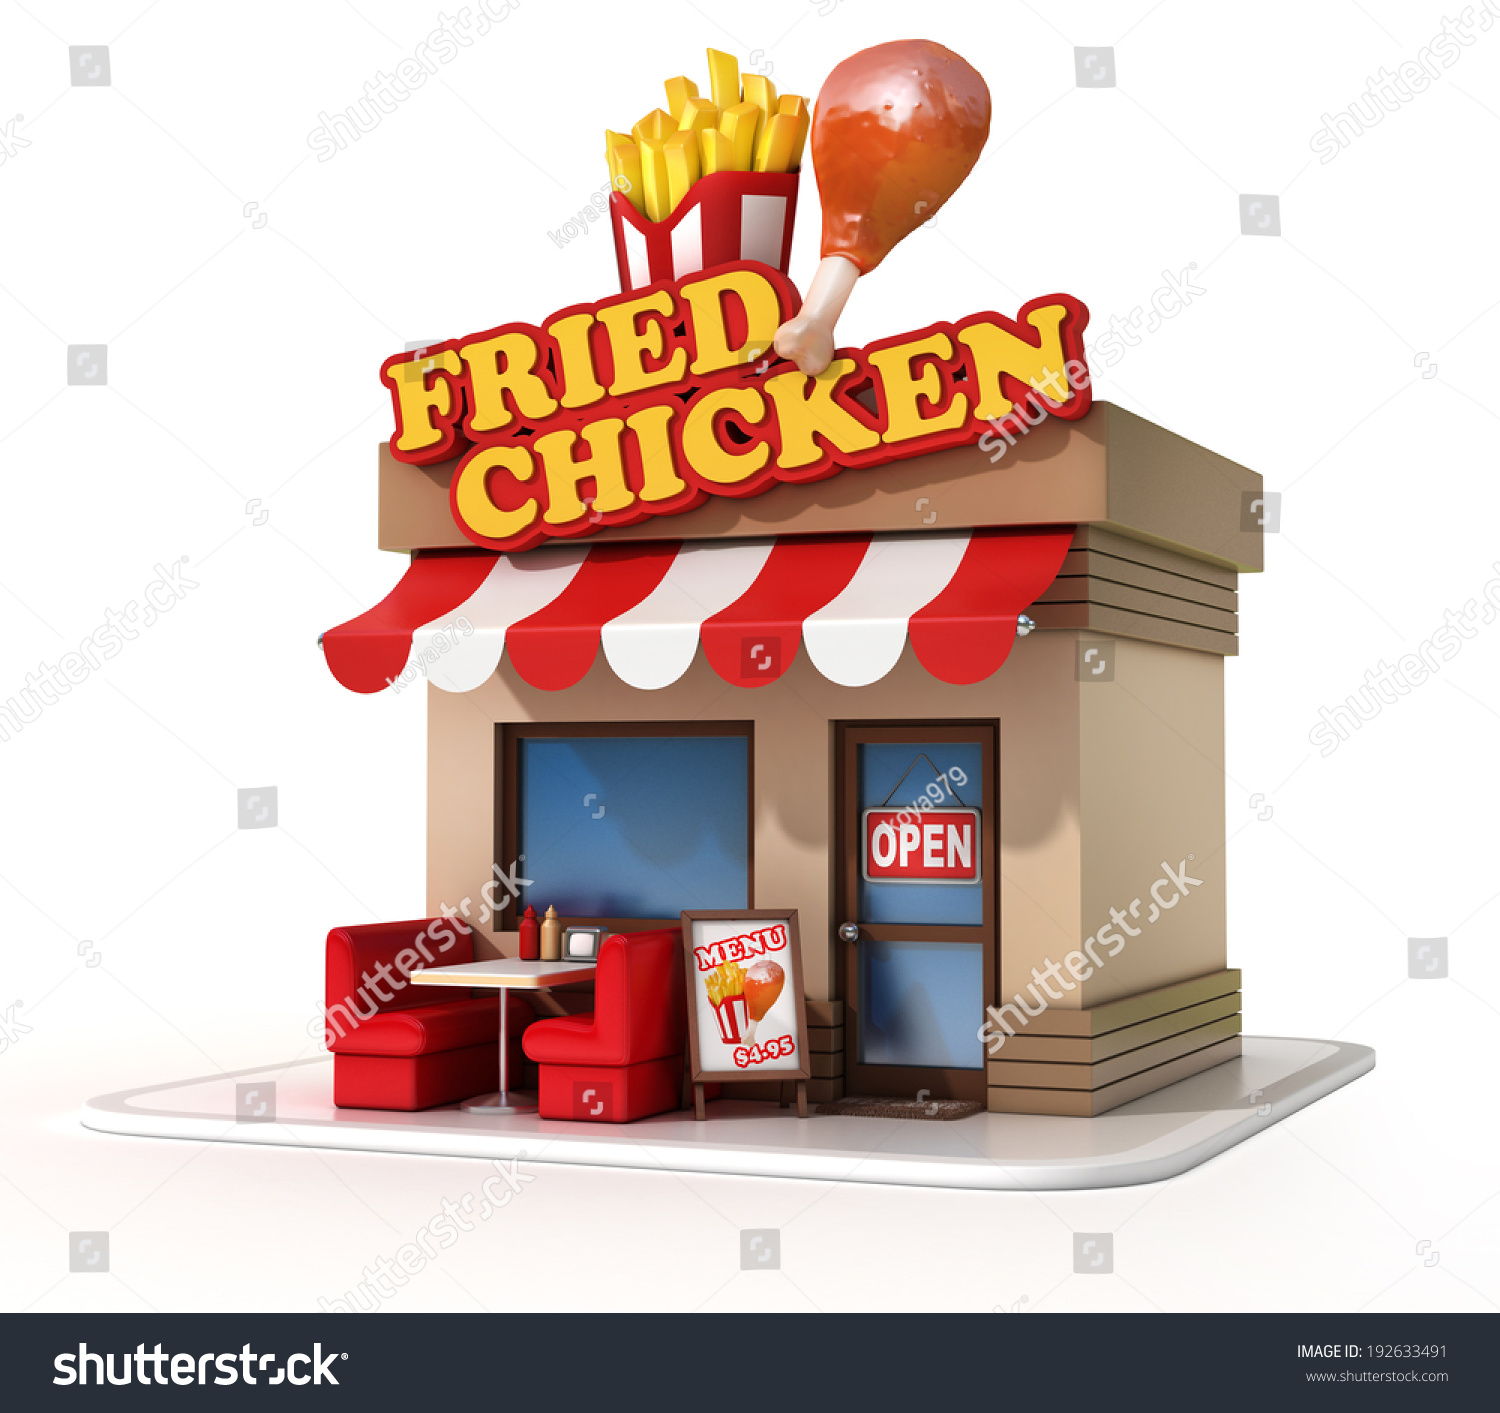 how to open a fried chicken restaurant